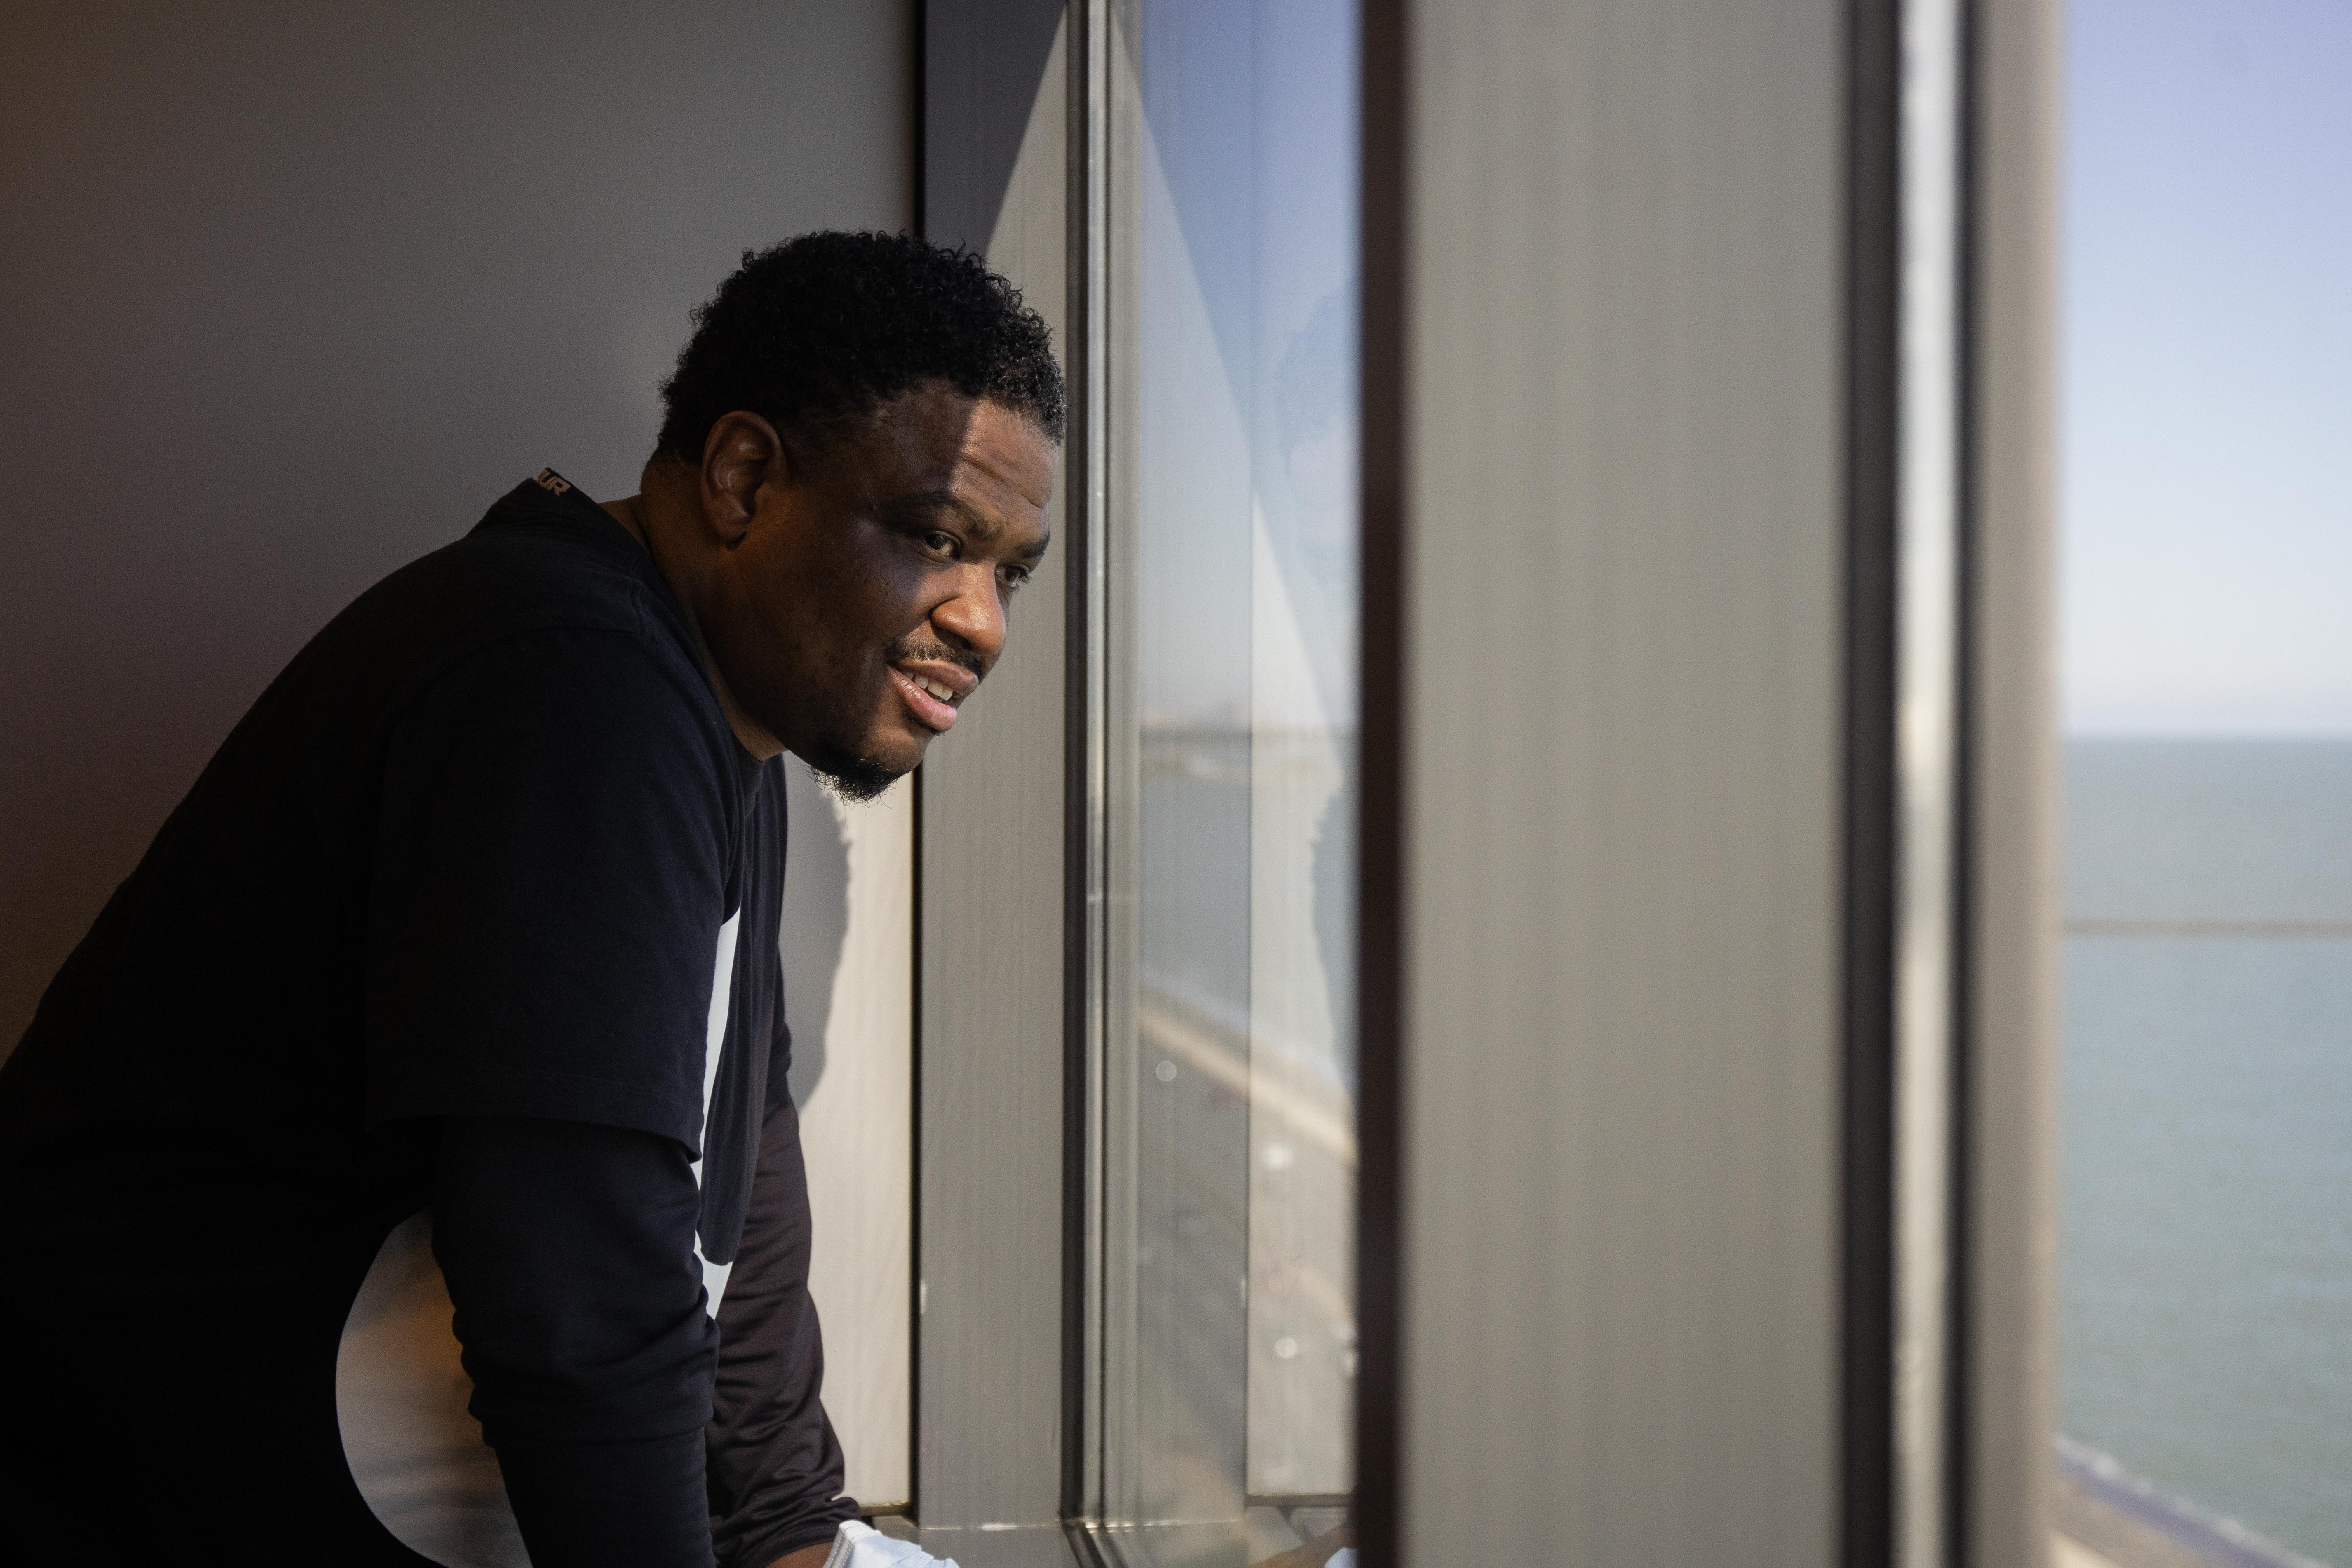 Corey Knox, 44, stares out the window at the Northwestern University Pritzker School of Law. Knox spent about 27 years in Illinois prisons, much of it in solitary confinement.